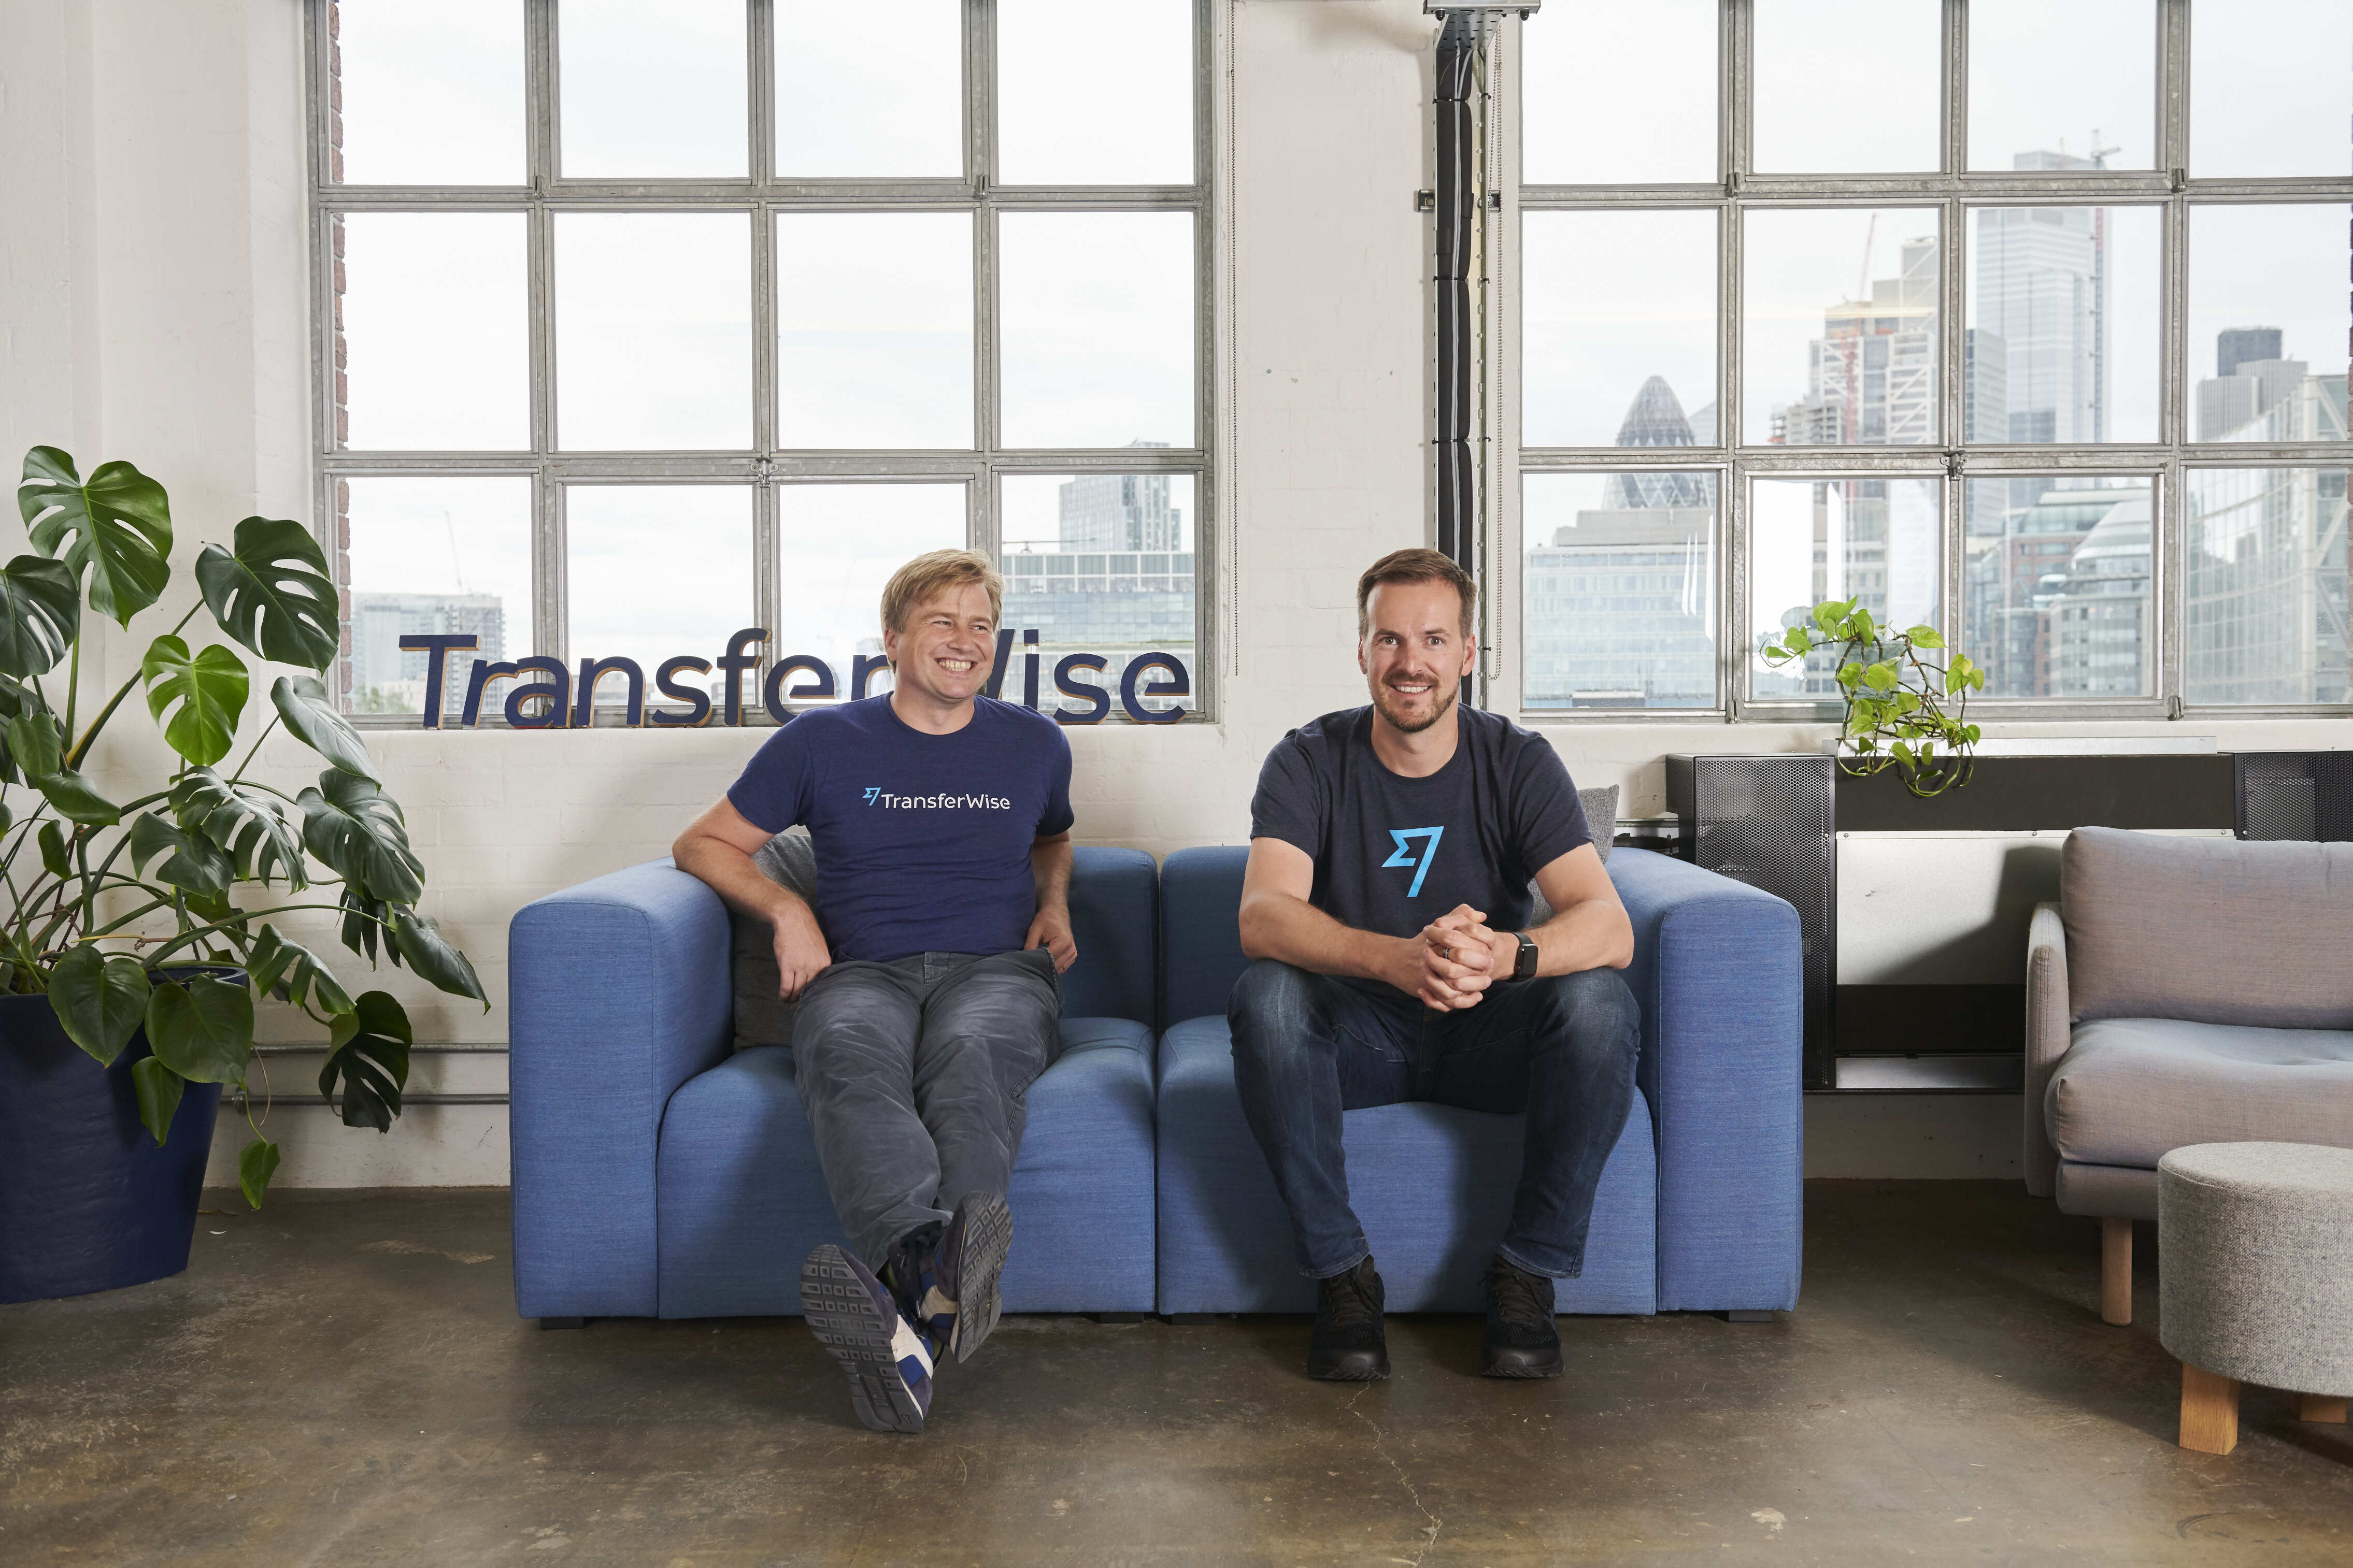 Fintech start-up TransferWise gets FCA approval to offer investments 78